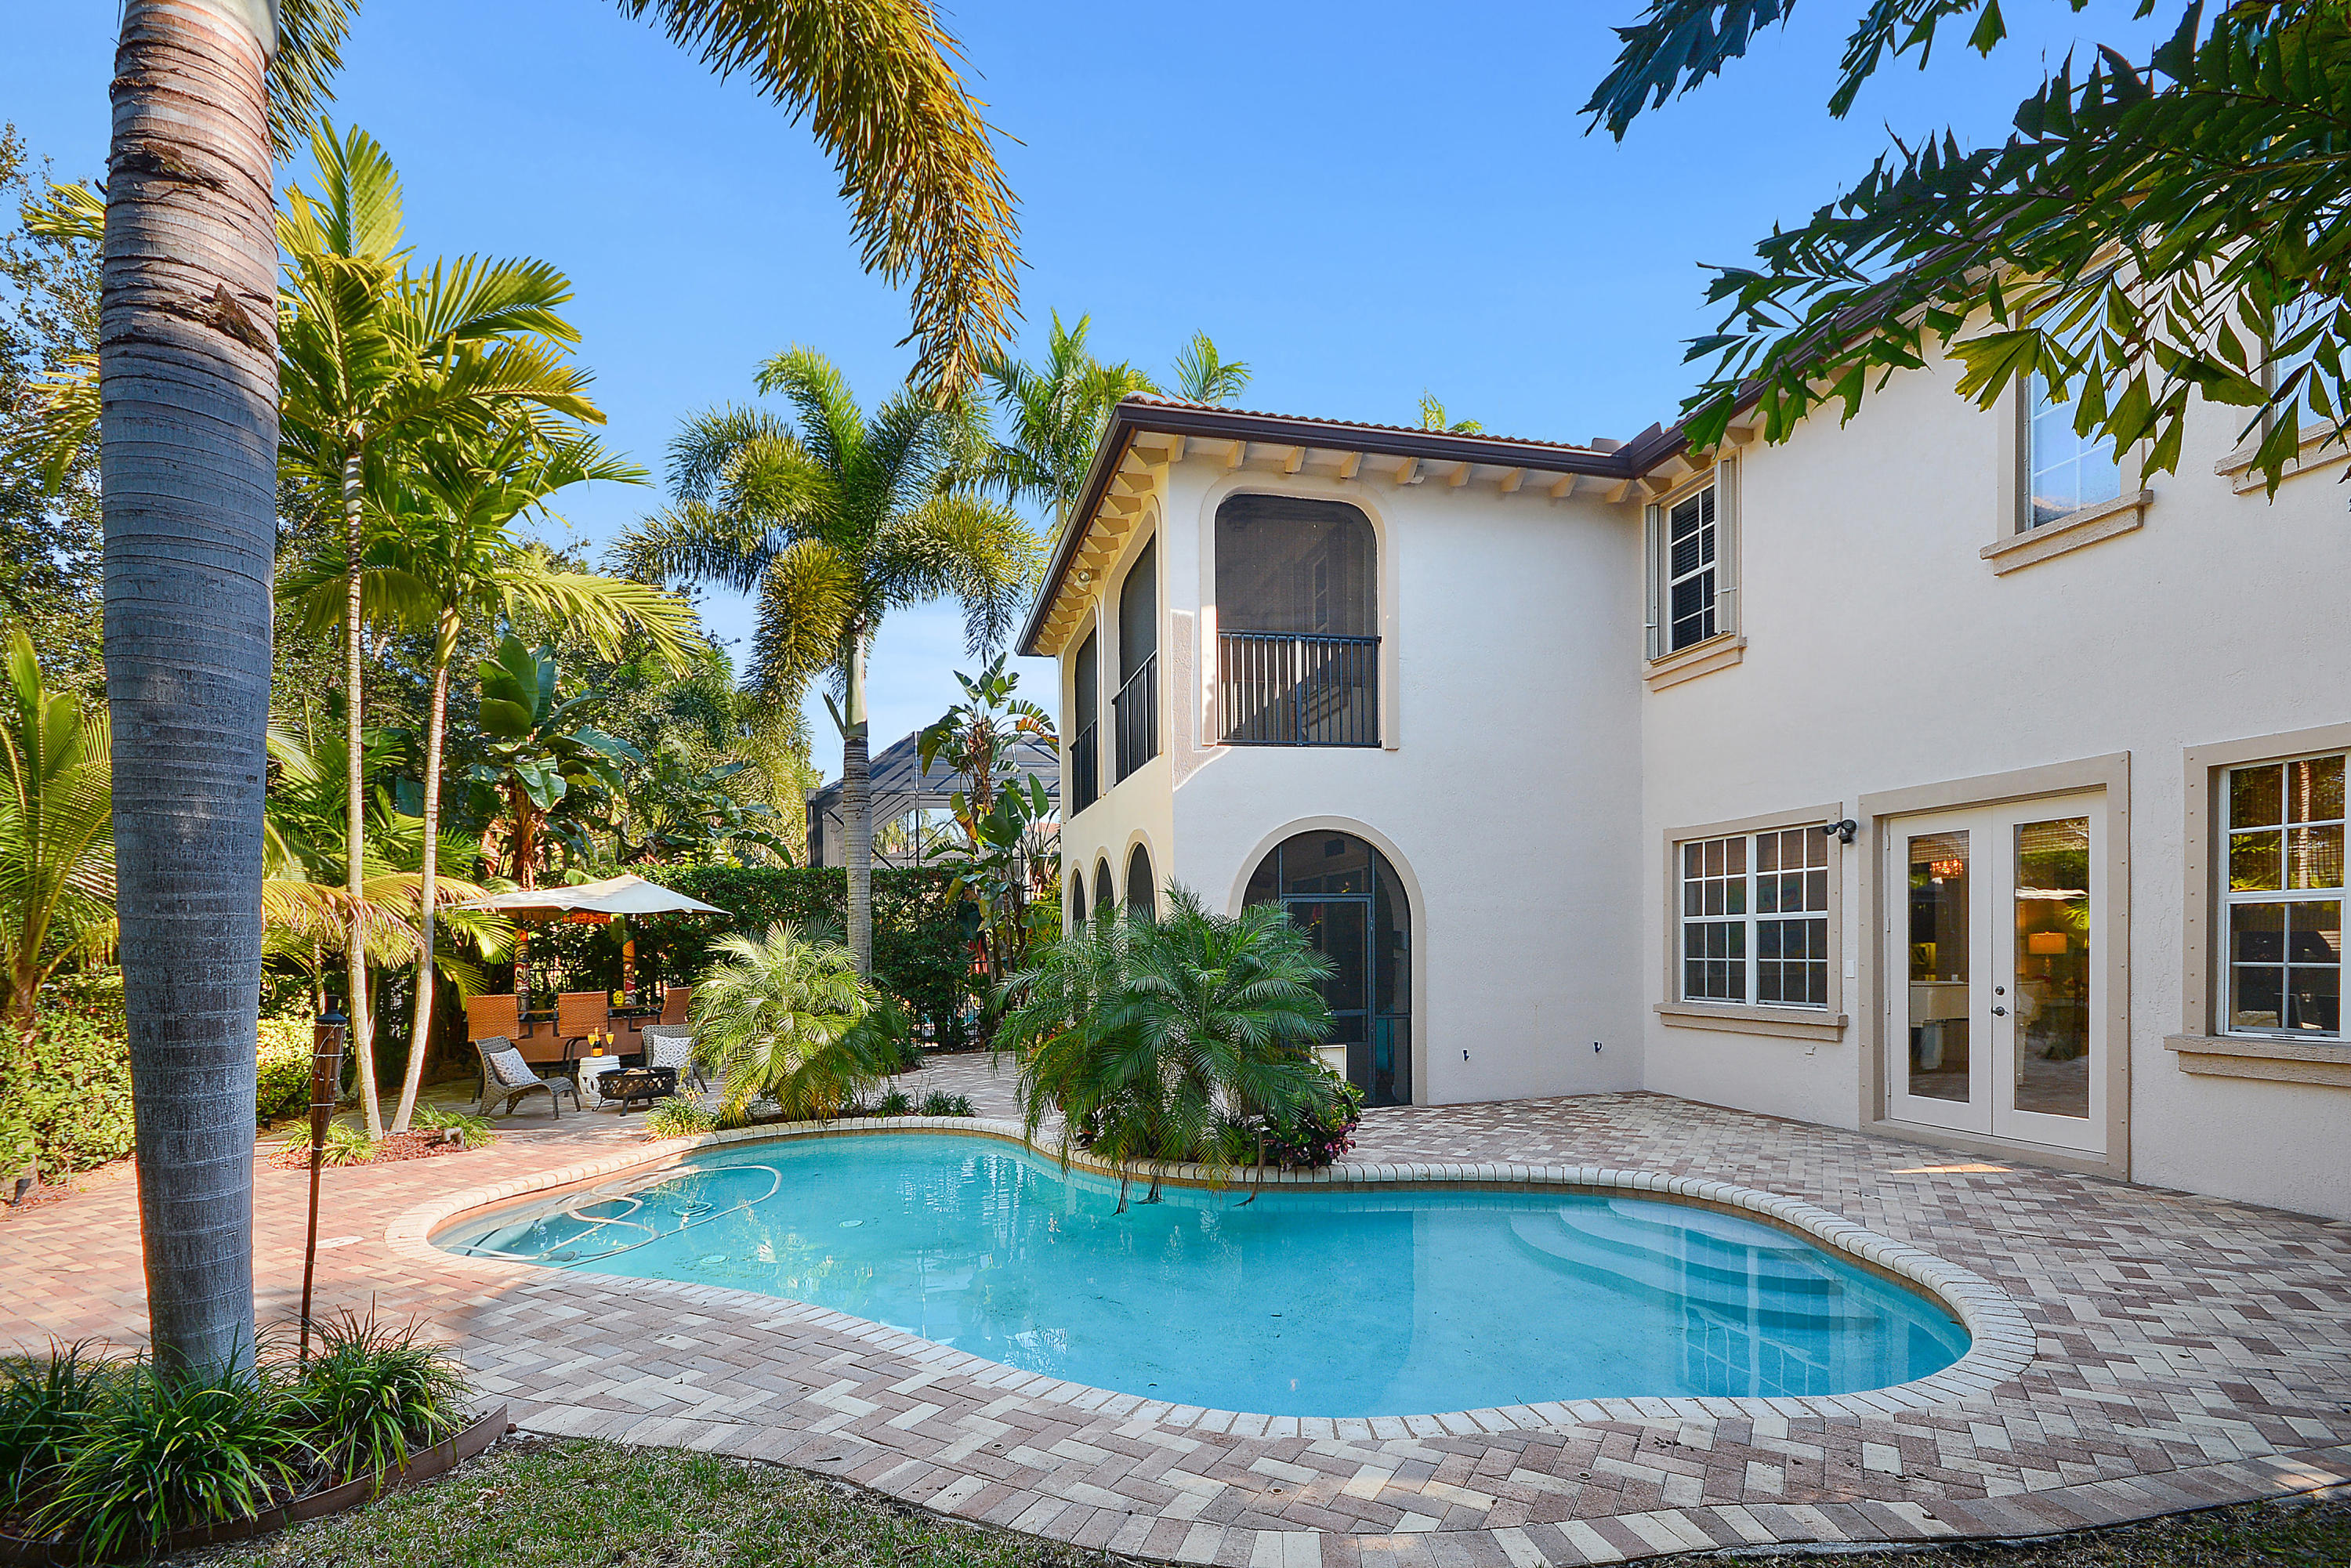 Evergrene palm beach gardens homes real estate for sale - Movie theater palm beach gardens ...